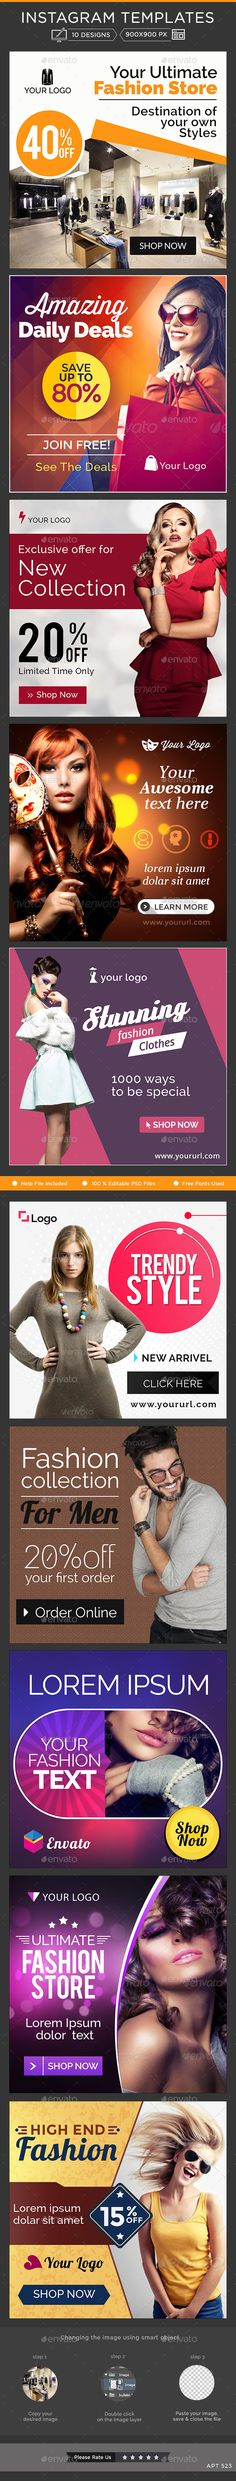 Fashion Instagram Banners - 10 Designs - Banners & Ads Web Template PSD. Download here: http://graphicriver.net/item/fashion-instagram-banners-10-designs/11007220?s_rank=1767&ref=yinkira